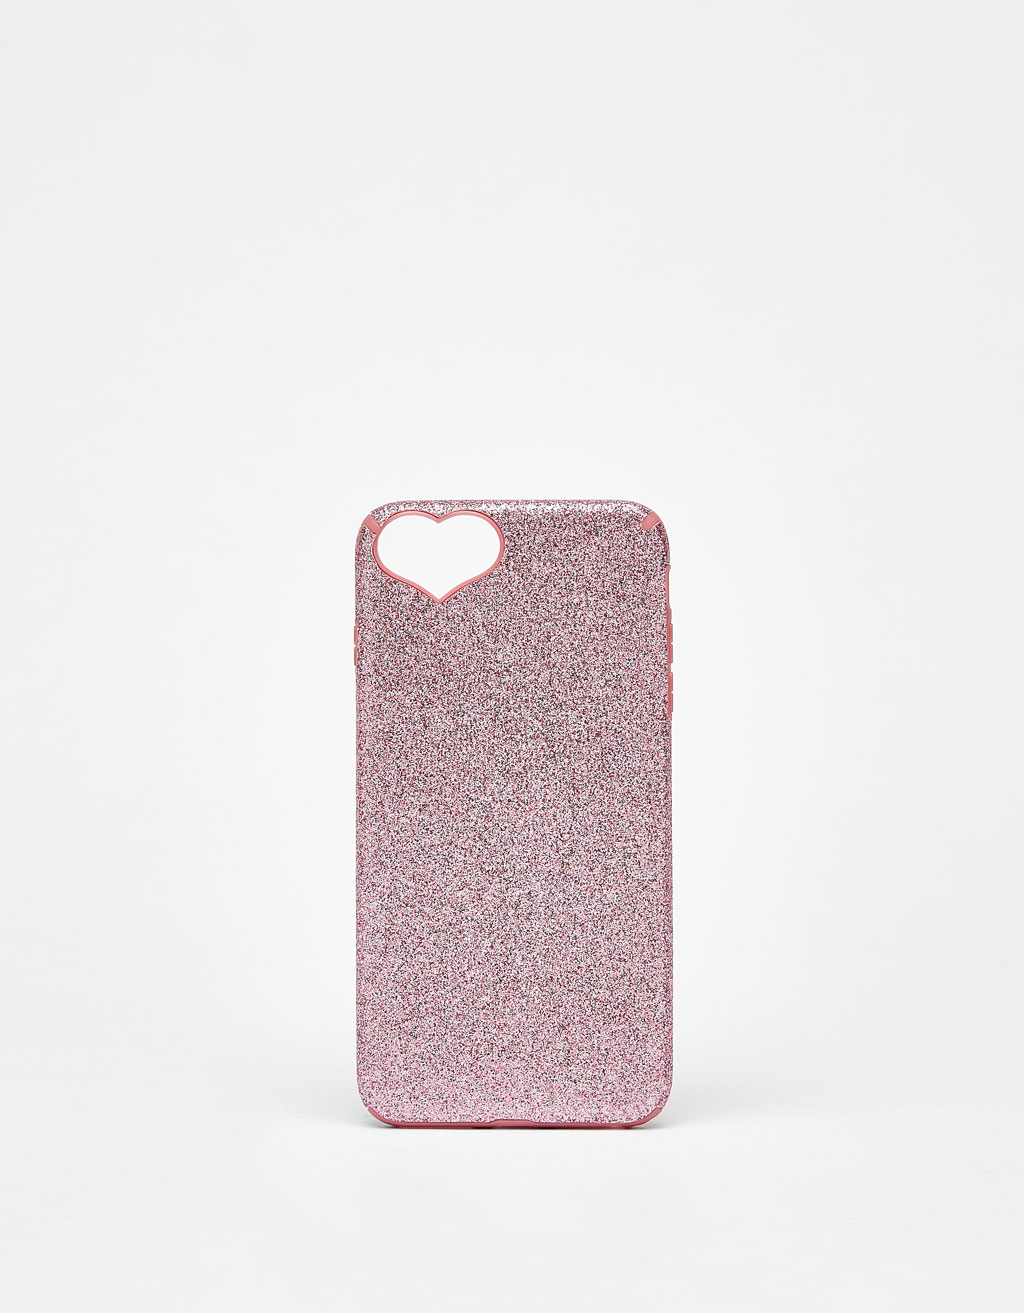 Glitter iPhone 6 plus/7 plus case